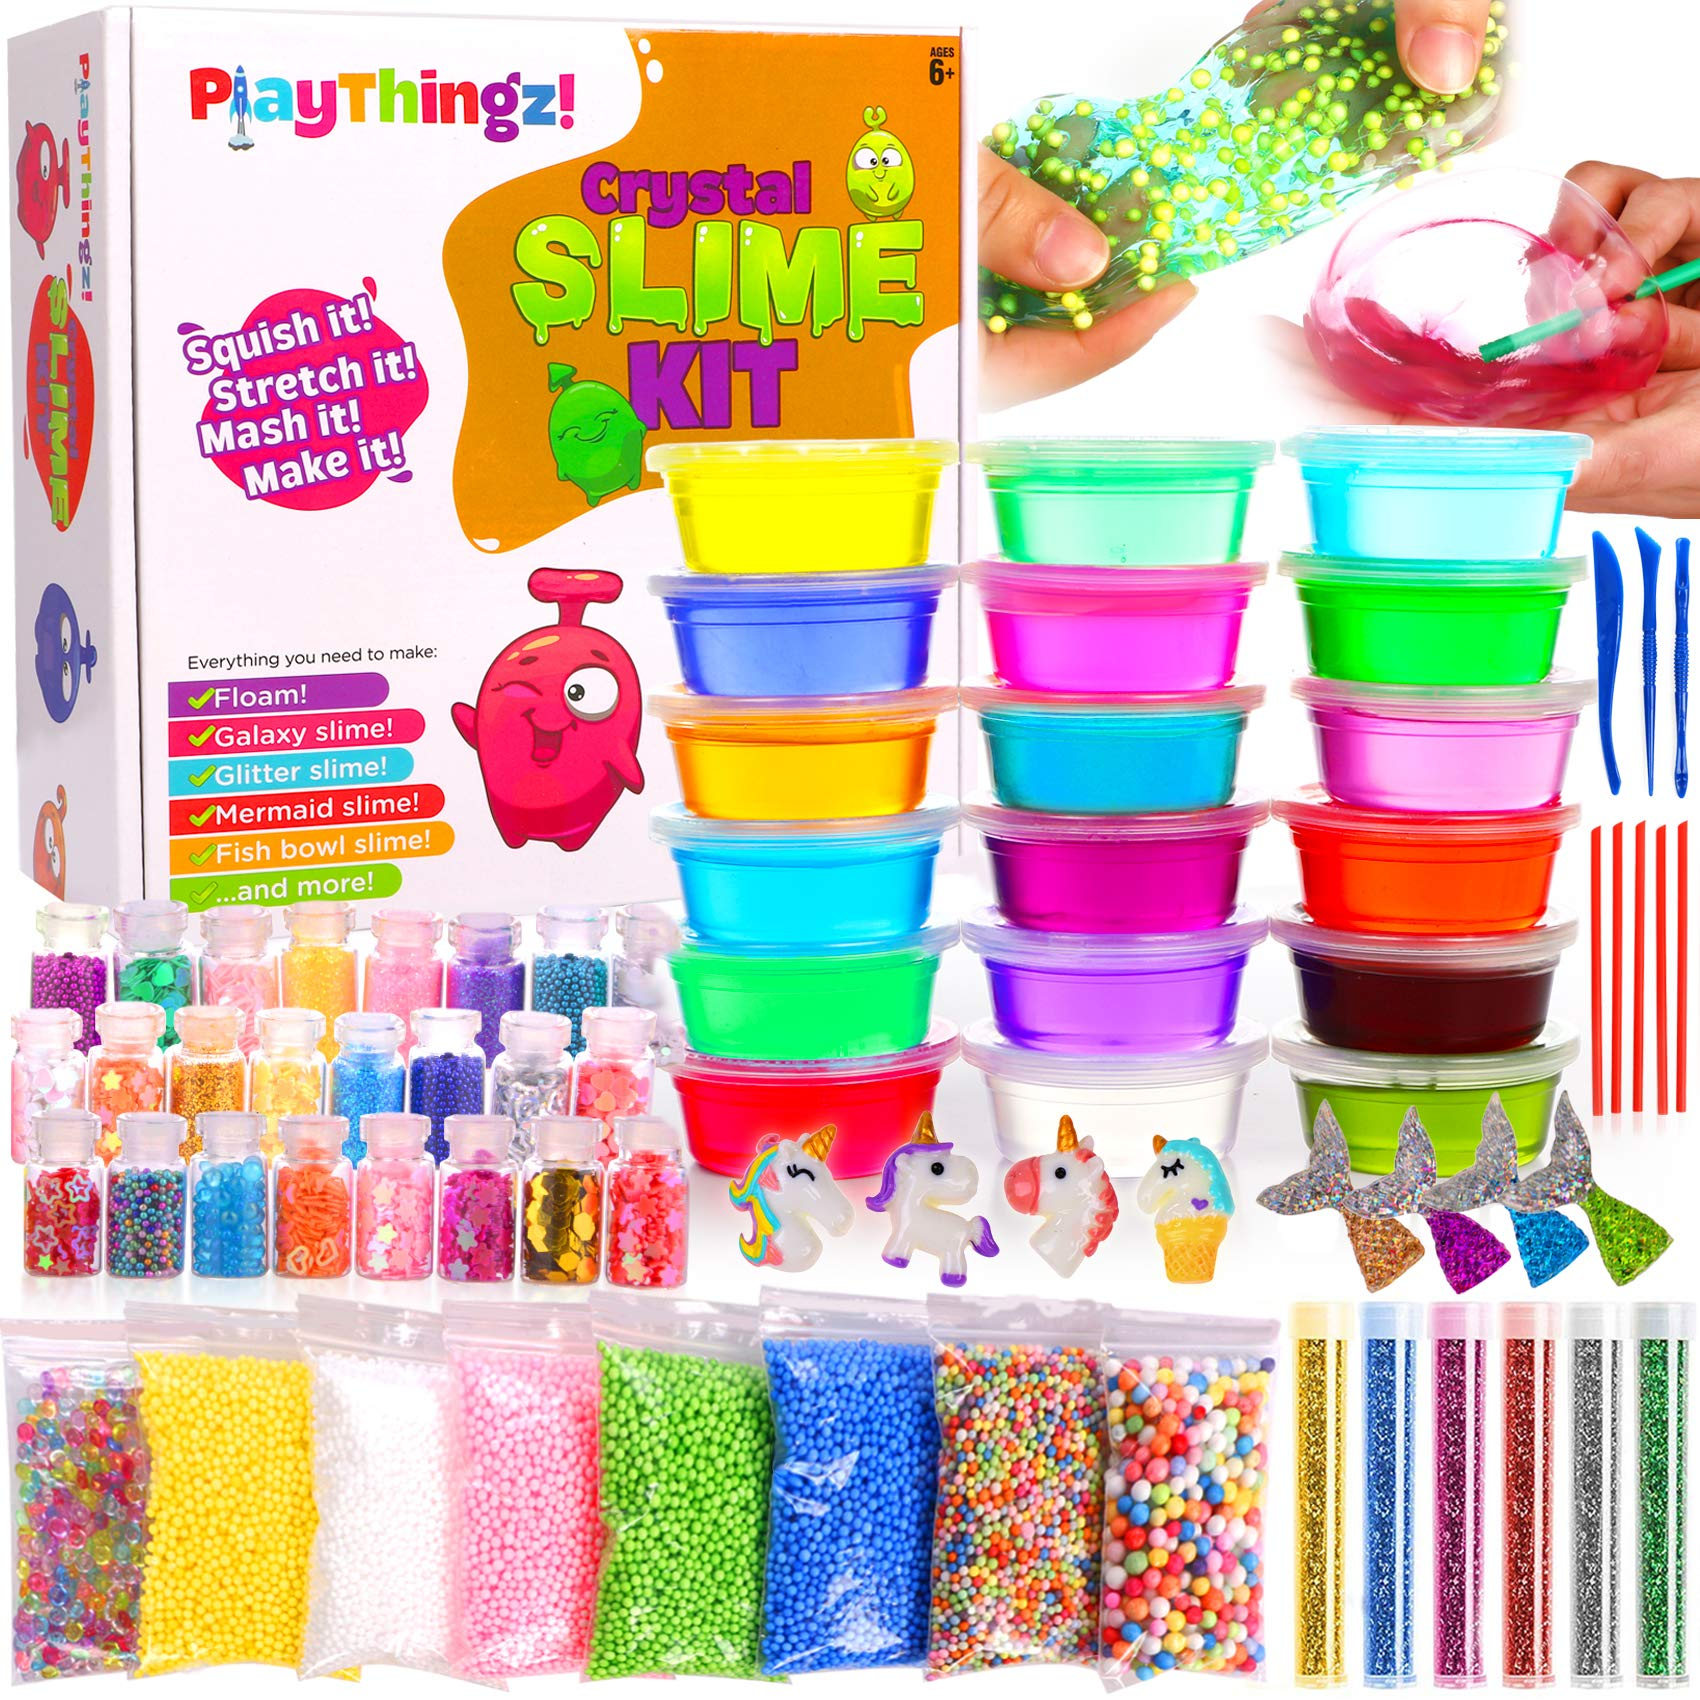 DIY Slime Kit for Girls Boys - Ultimate Slime Making Kits - Slime Supplies - 18 Slime Containers add ins Floam beads, Glitter, Galaxy, Mermaid, Fishbowl Crunchy Unicorn Clear Slime-Fun for Kids Party by PlayThingz